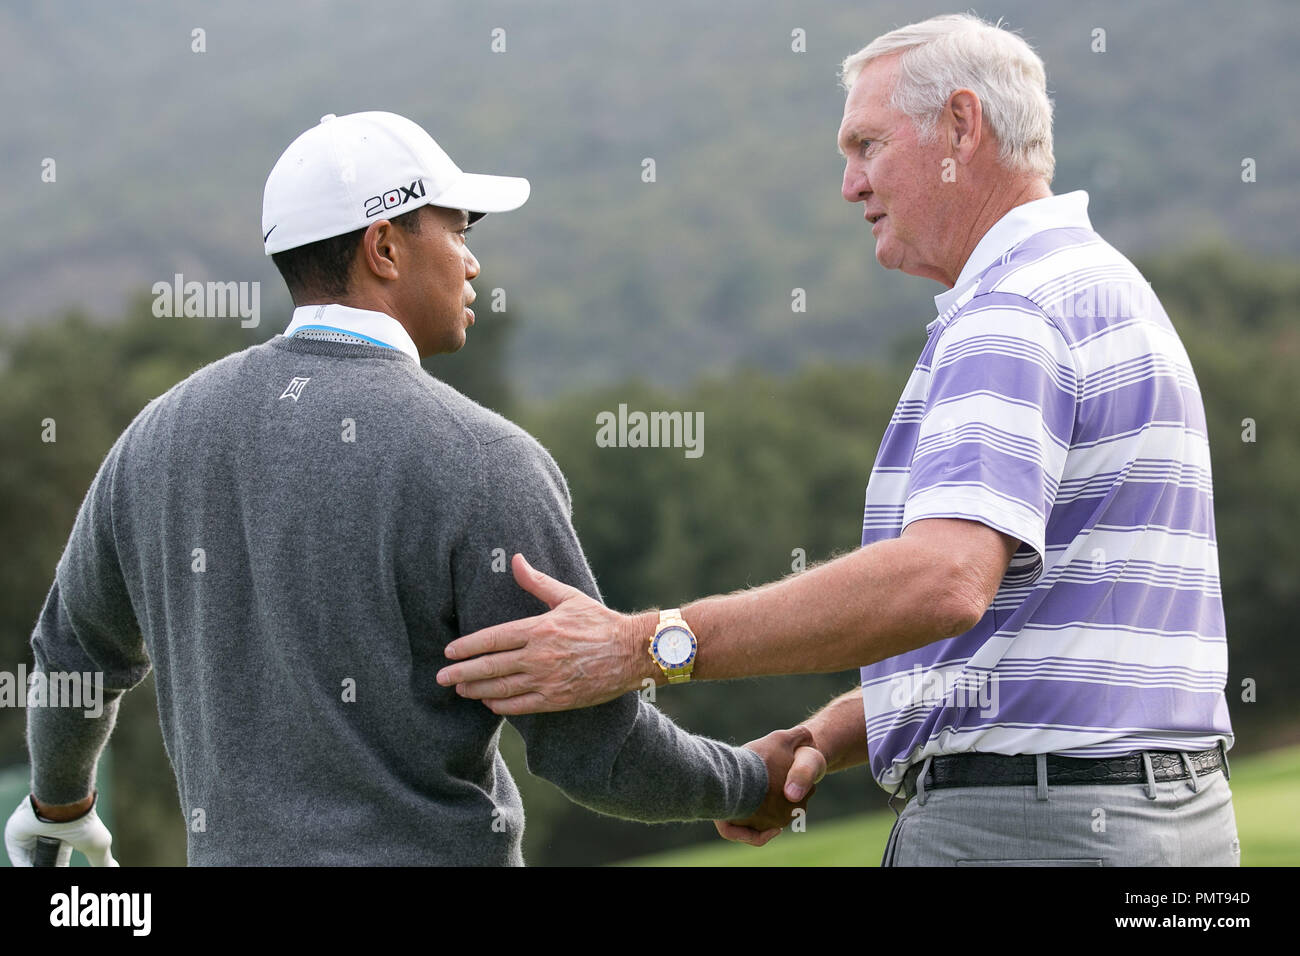 Tiger Woods and NBA great Jerry West talks golf while preparing for the 2012 World Challenge at Sherwood Country Club on November 27, 2012 in Thousand Oaks, California (Photo by John Salangsang / PRPP / PictureLux) - Stock Image